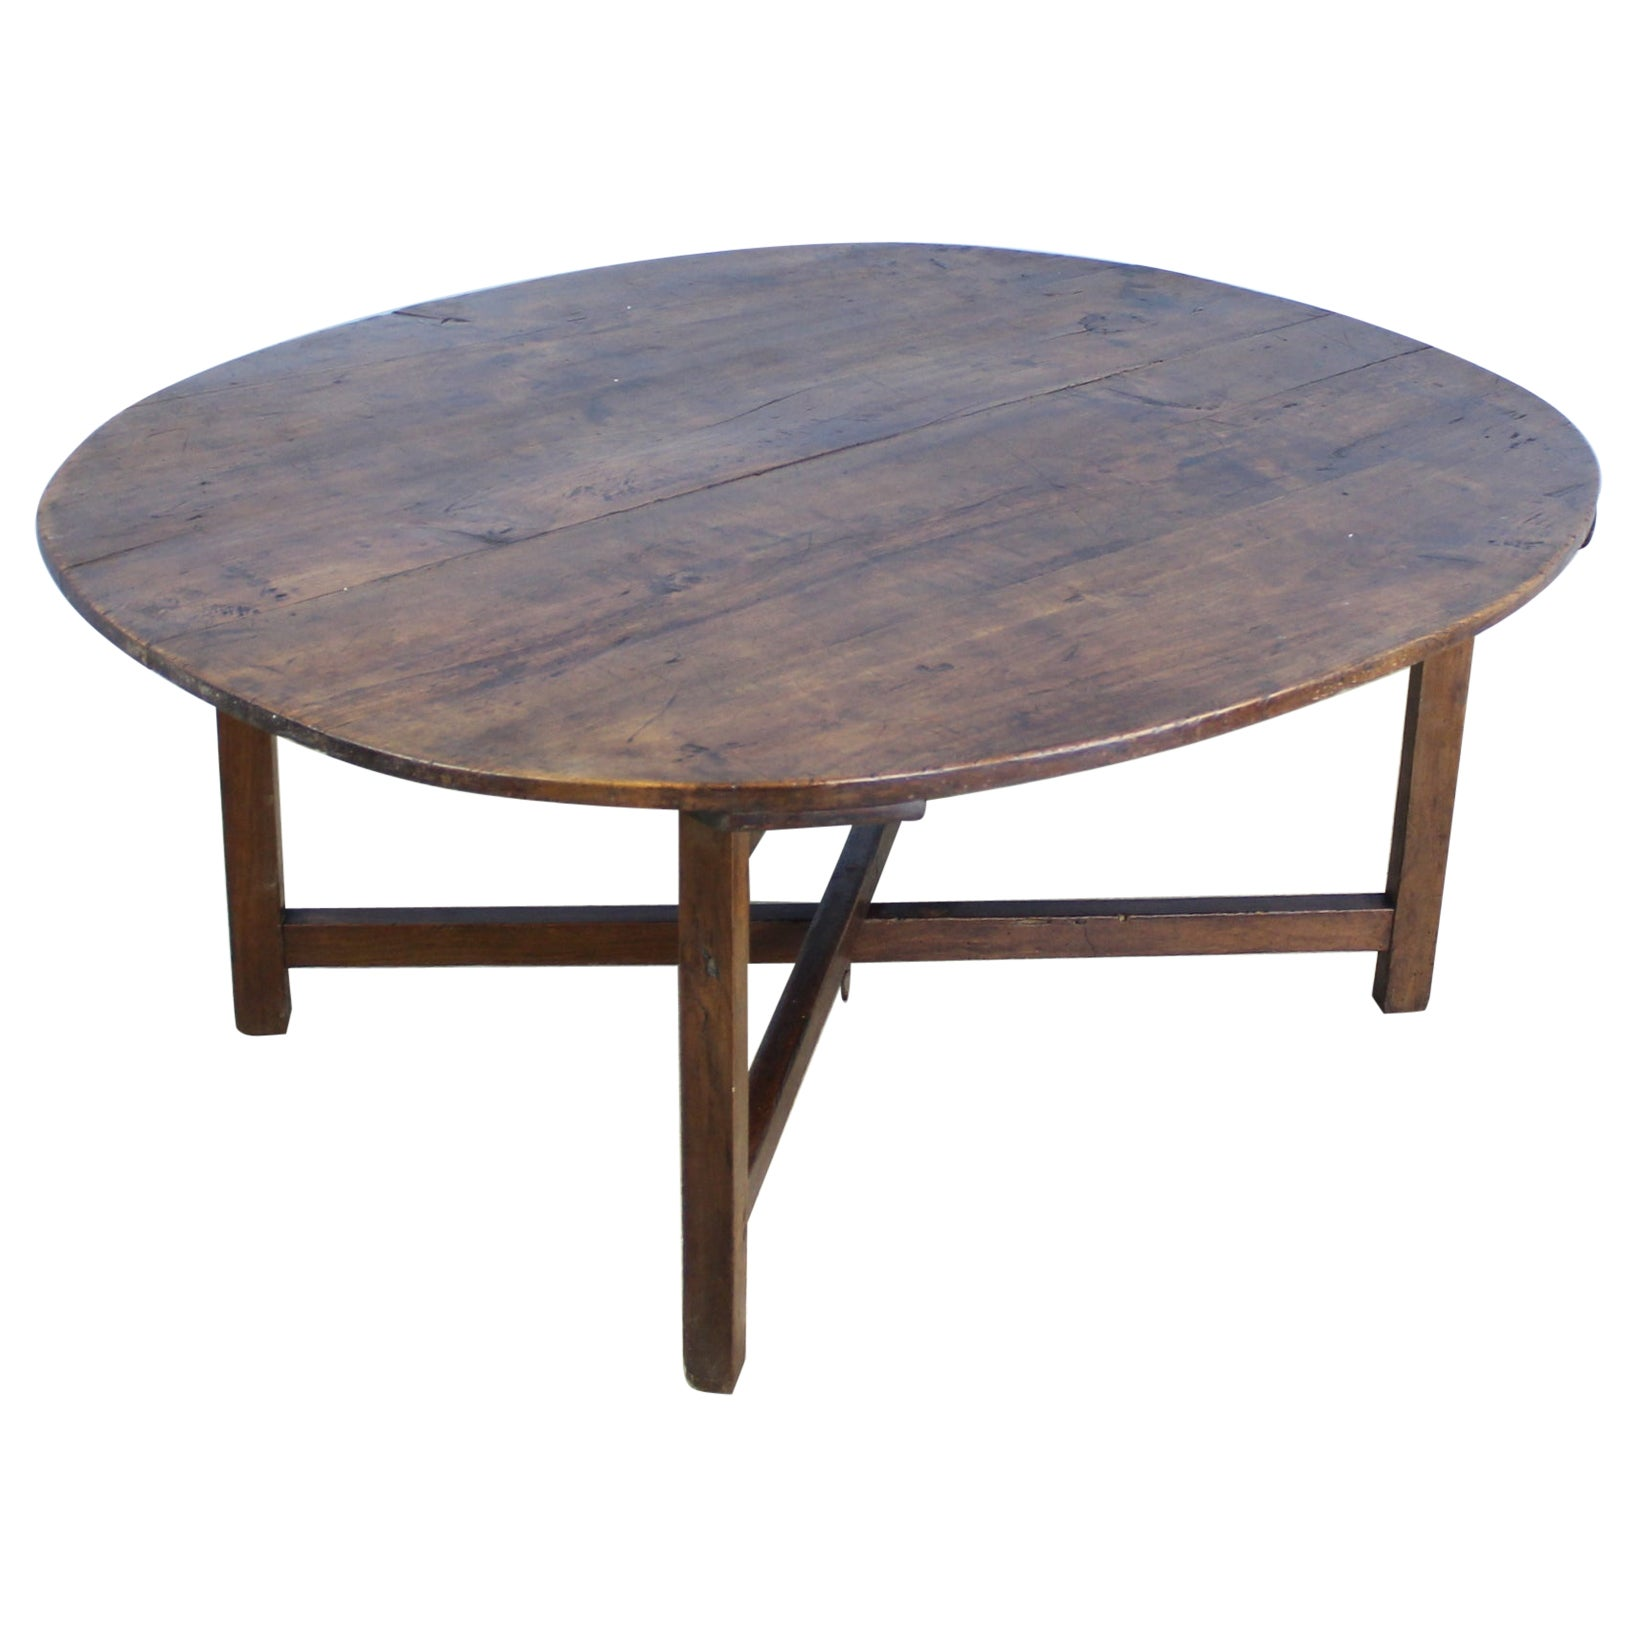 Criss Cross Coffee Table.Oval Cherry Coffee Table On Criss Cross Stretcher Base